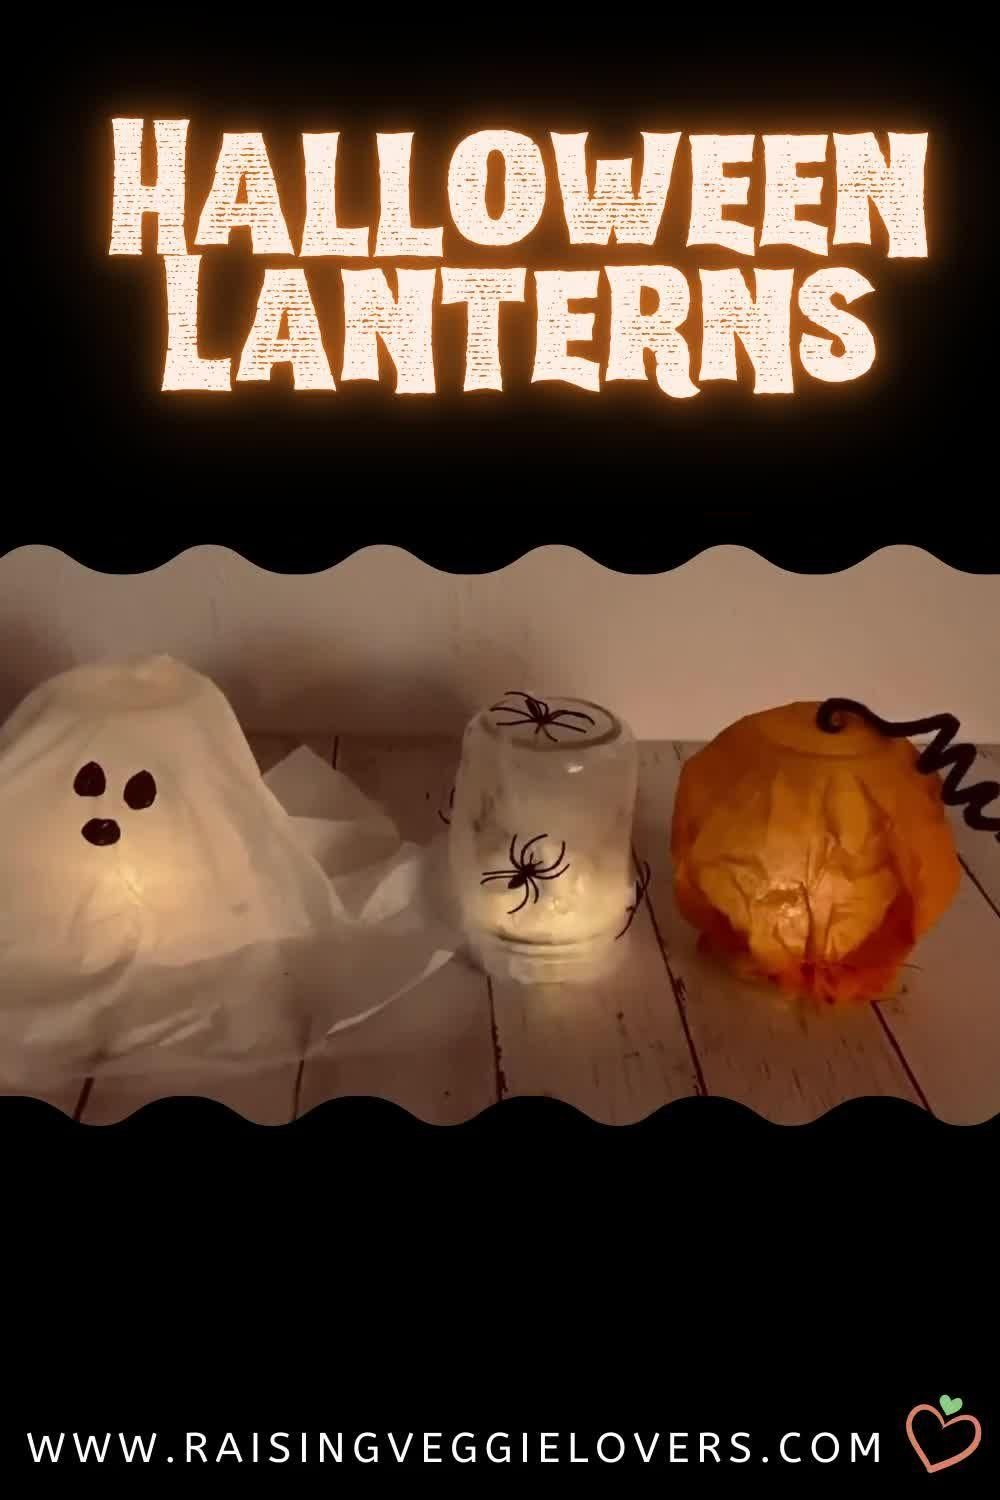 These Halloween lanterns are the perfect craft to do with your kids this Halloween. They are so quick and easy to make, and will leave your kids in awe! #halloween #halloweencraft #halloweenideas #kidcraft #fallcraft #easycraft #budgetcraft